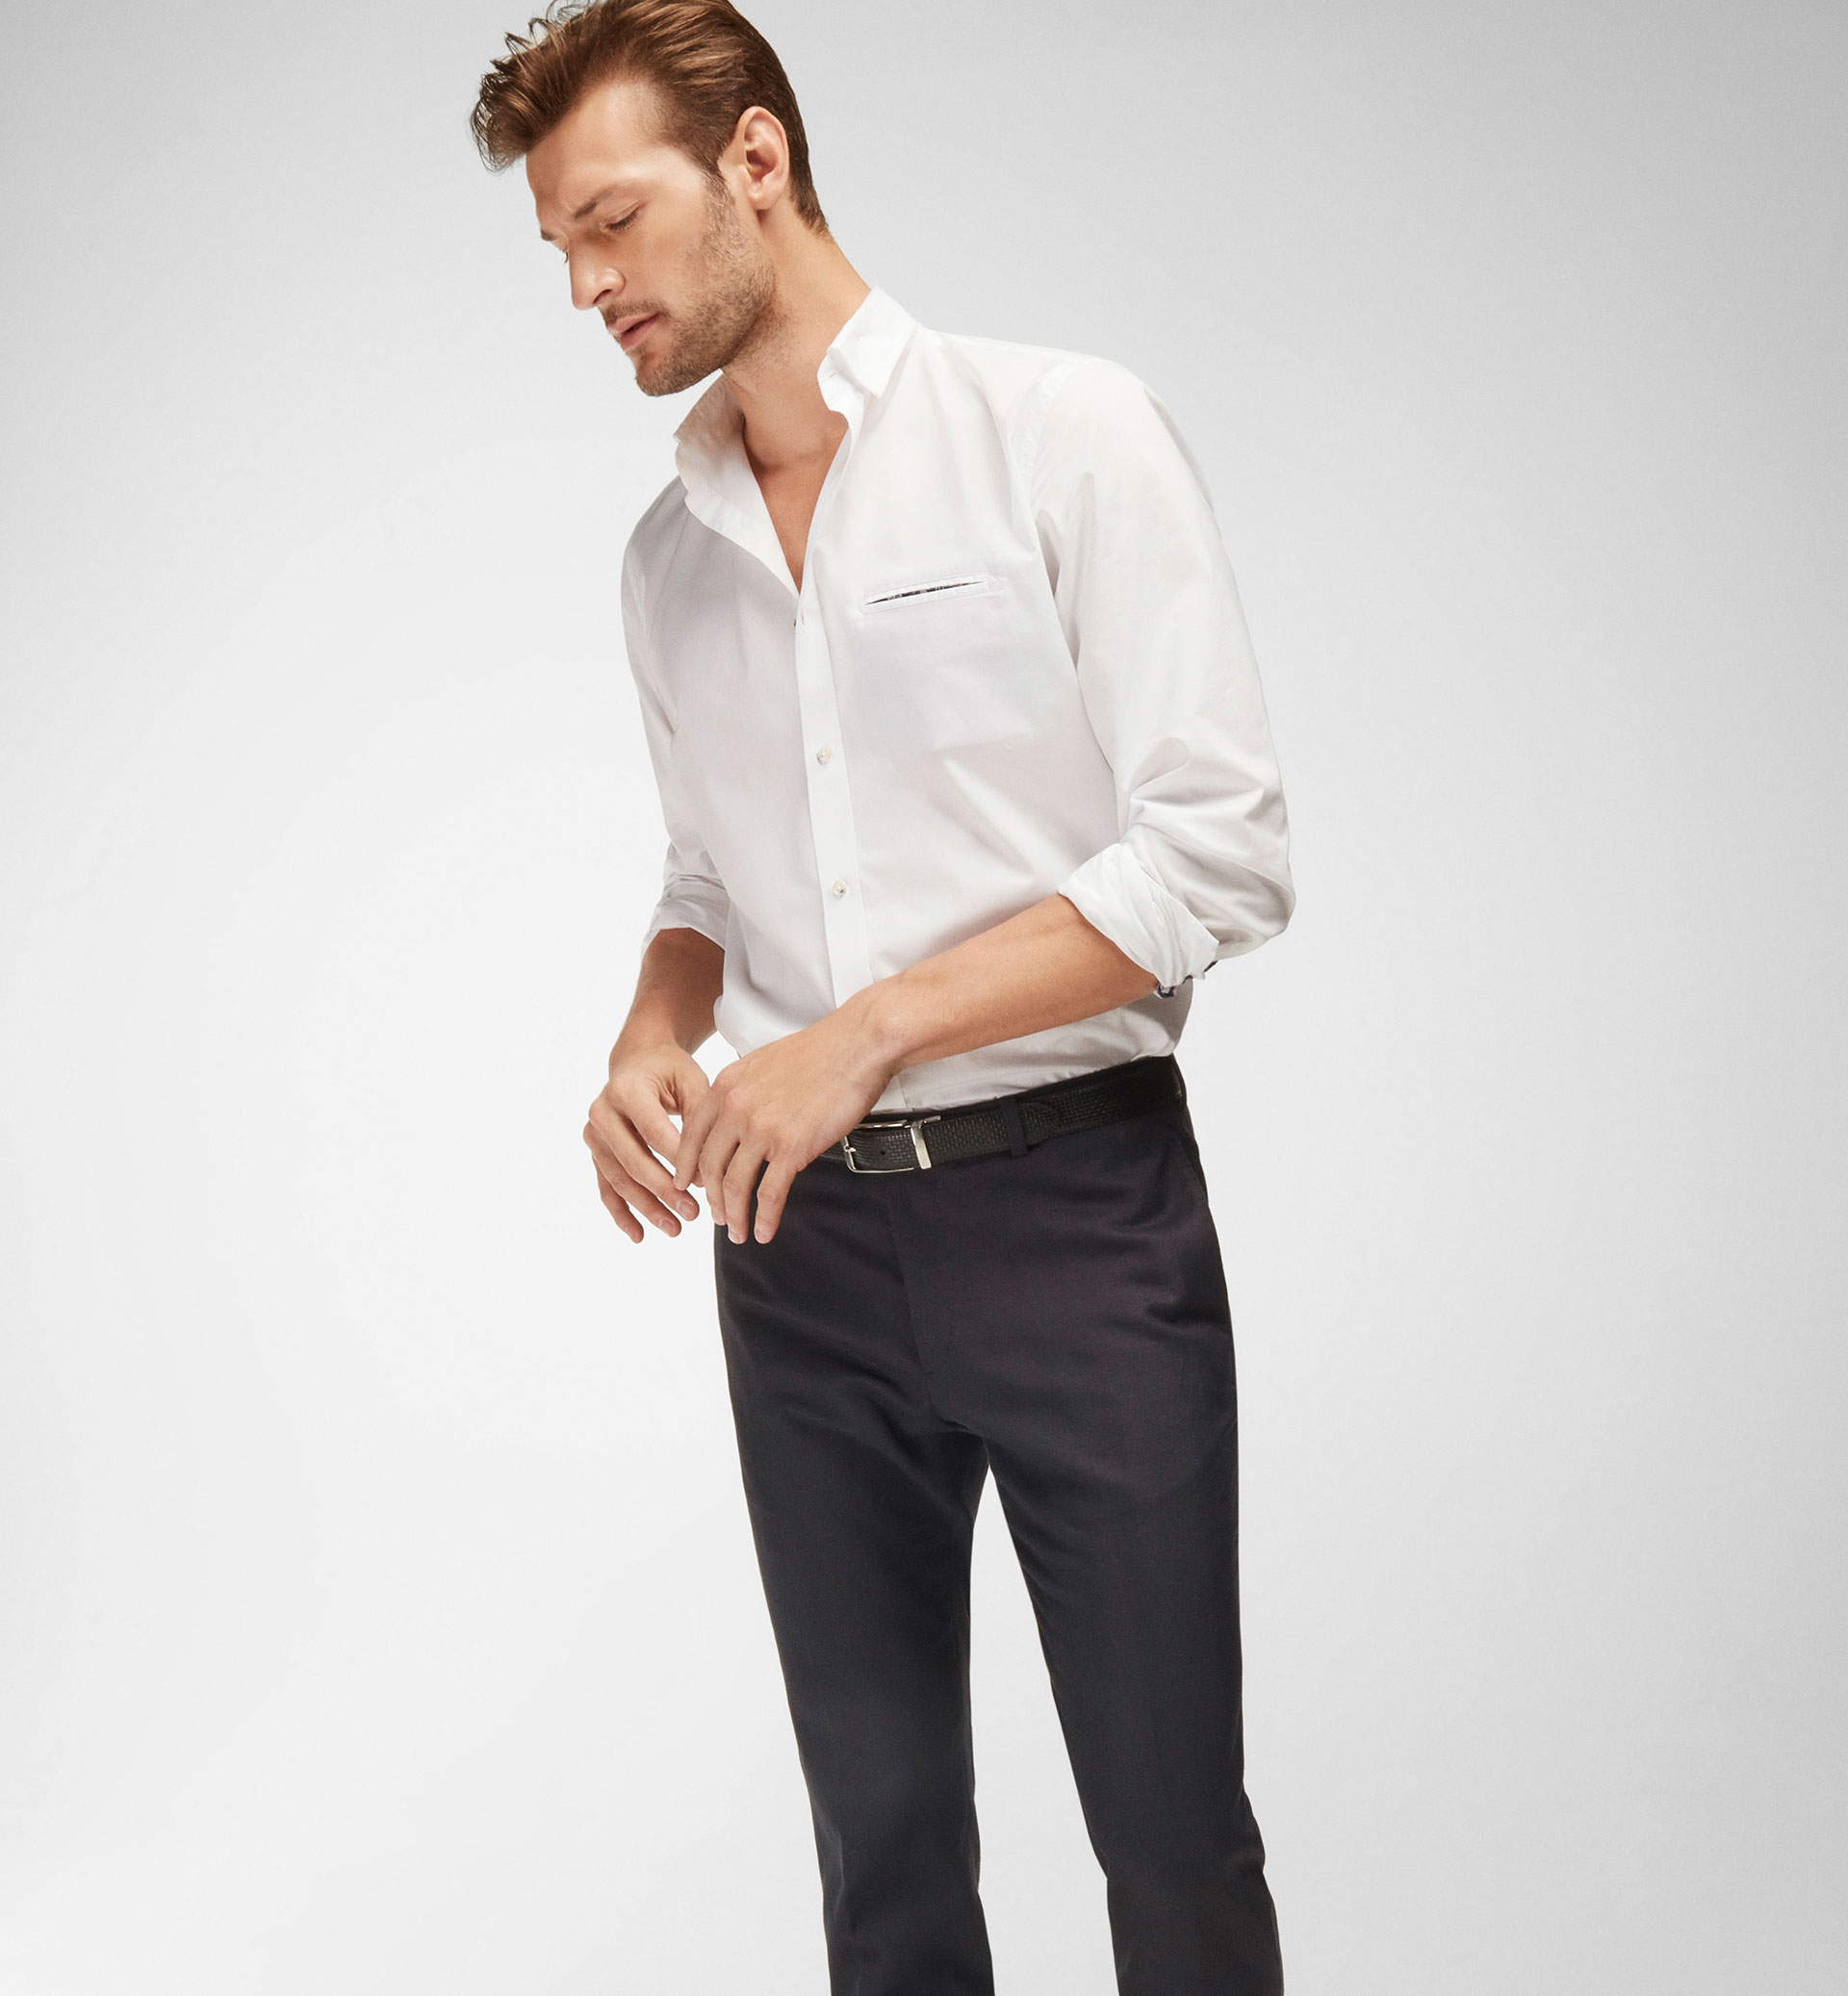 WHITE SHIRT WITH CONTRASTING POCKET